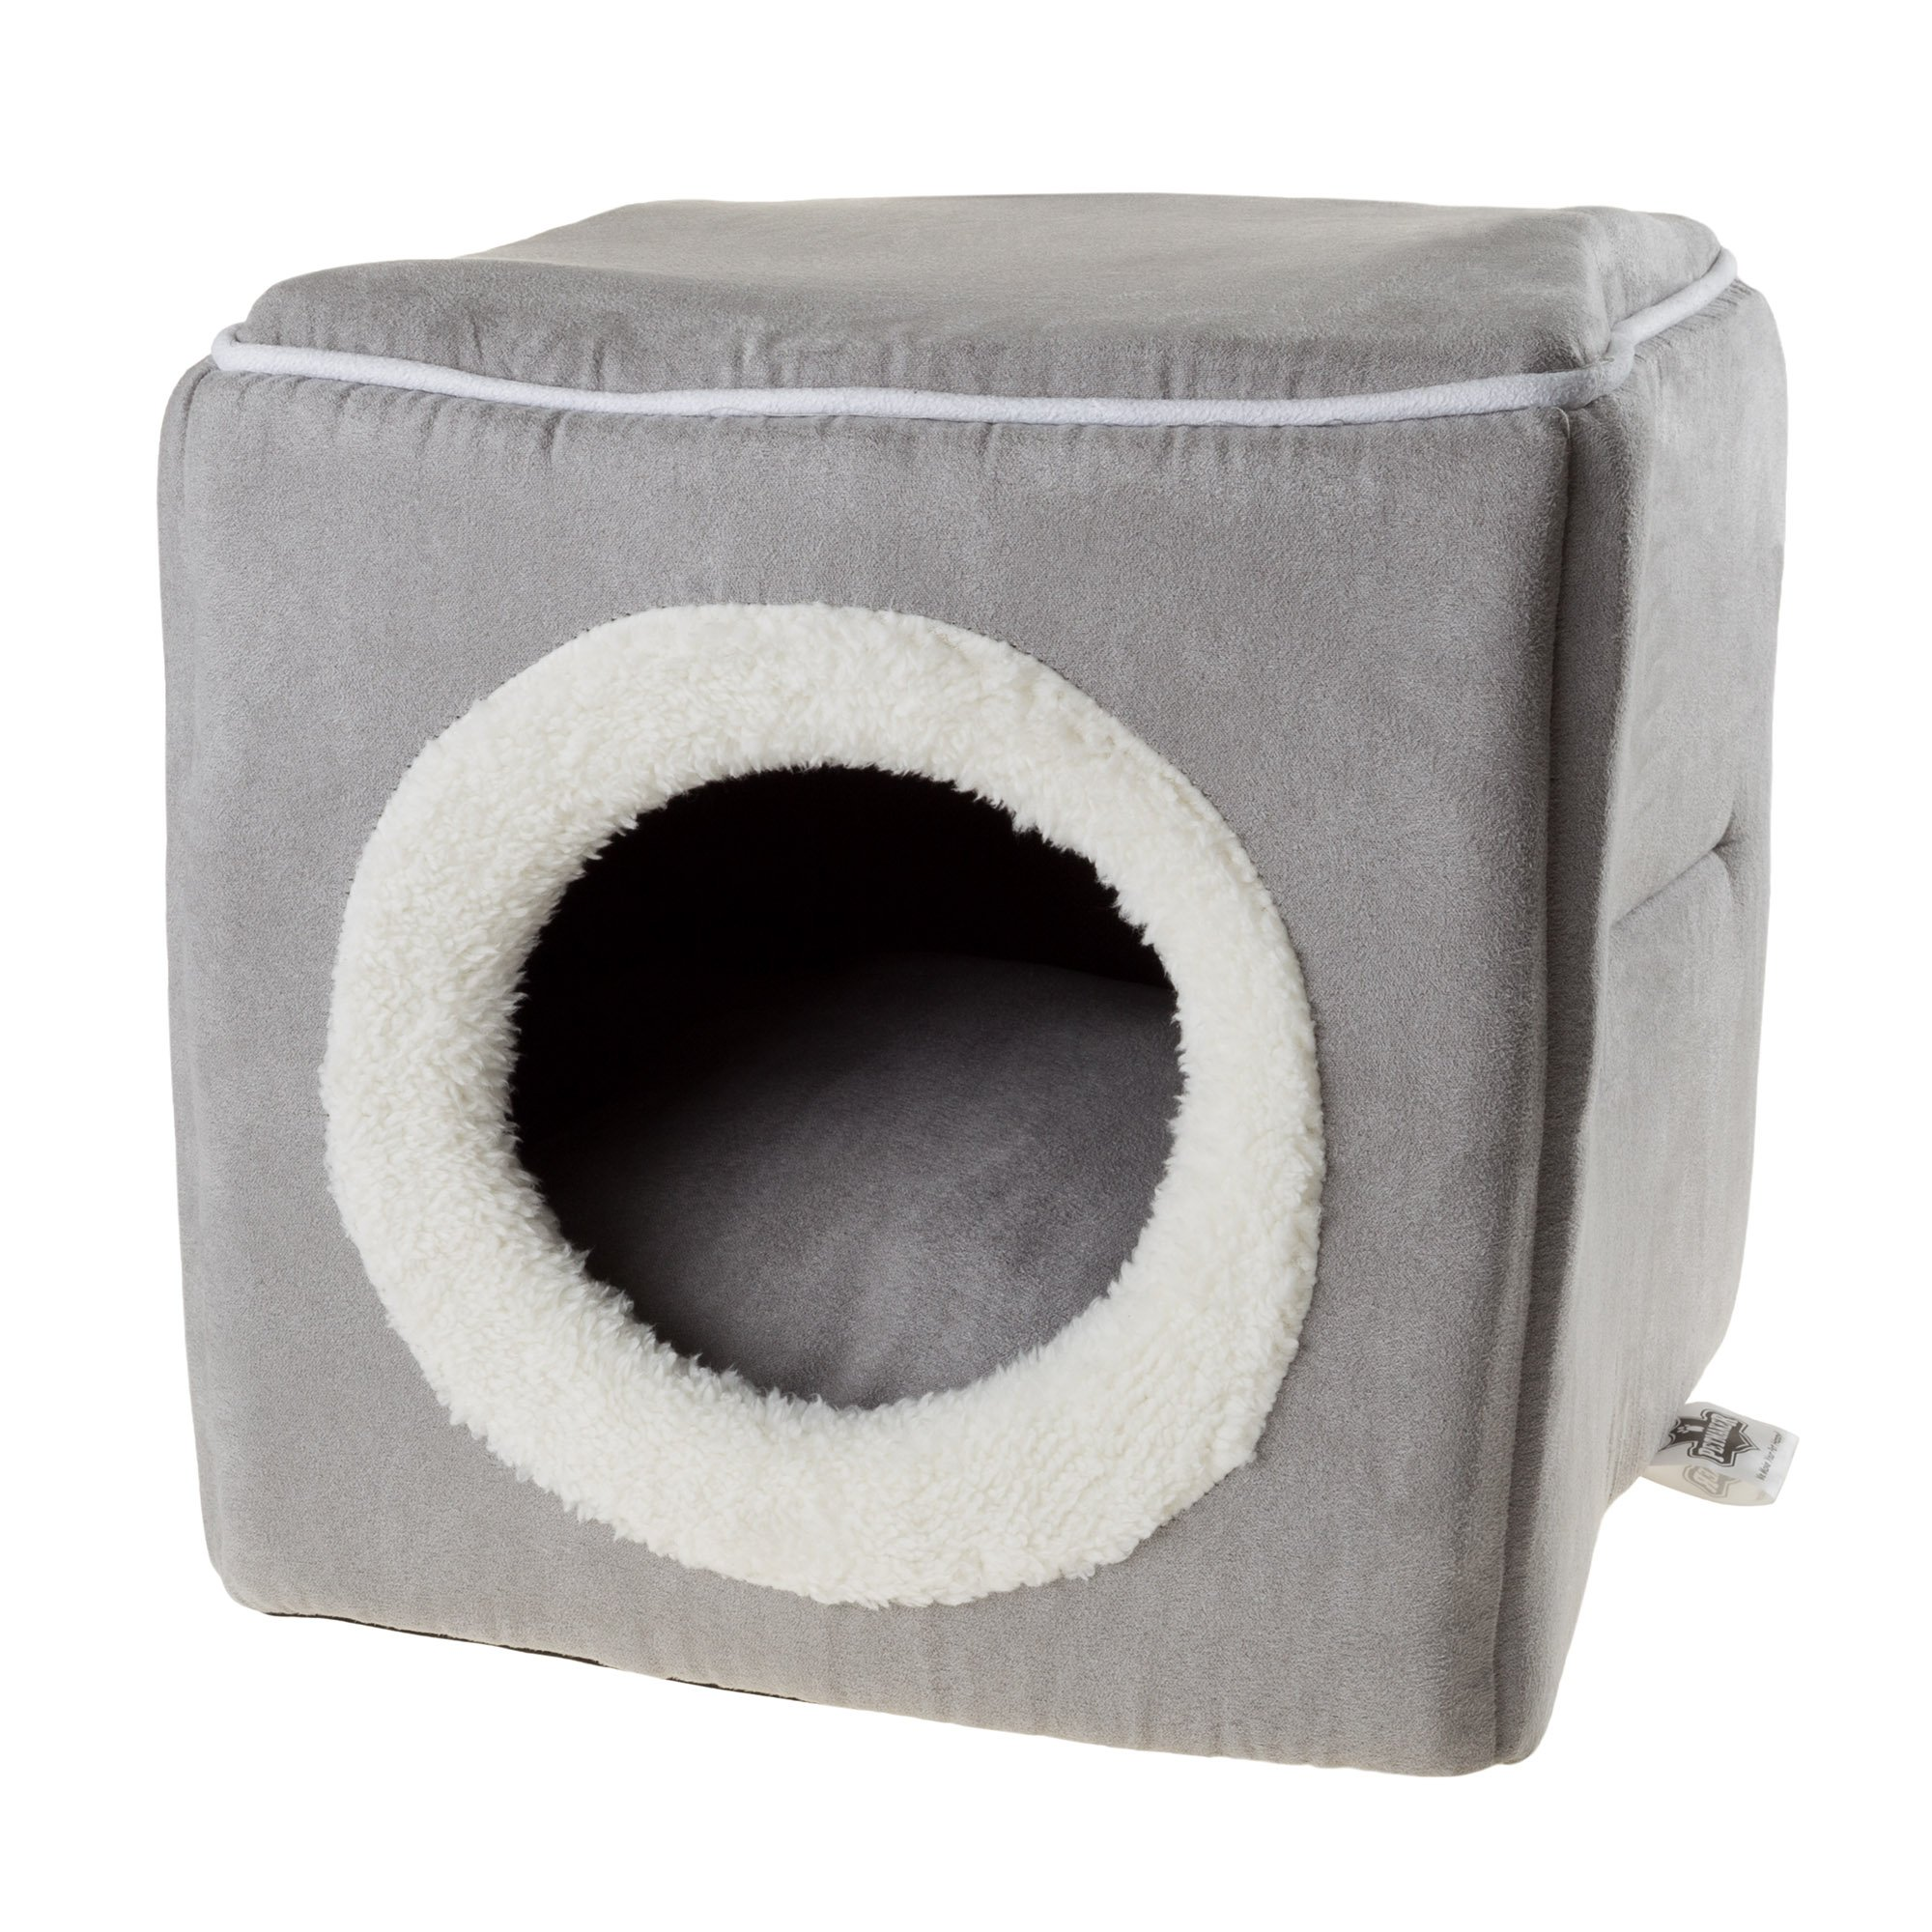 PETMAKER Cat Pet Bed, Cave- Soft Indoor Enclosed Covered Cavern/House for Cats, Kittens, and Small Pets with Removable Cushion Pad by (Grey)